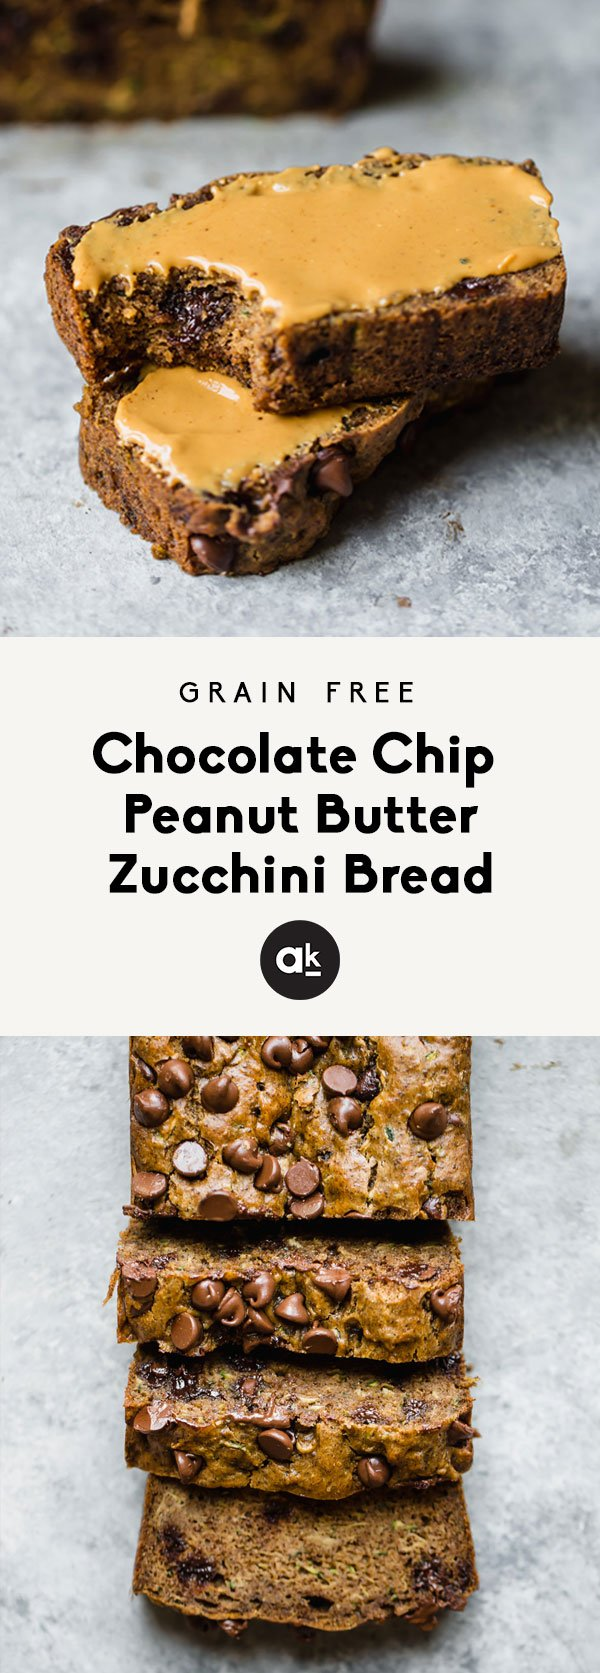 Low carb grain free peanut butter zucchini bread made with simple, nutritious ingredients. There are two options to make it: with coconut flour or with protein powder! Soft, fluffy, moist and a good source of protein & fiber.